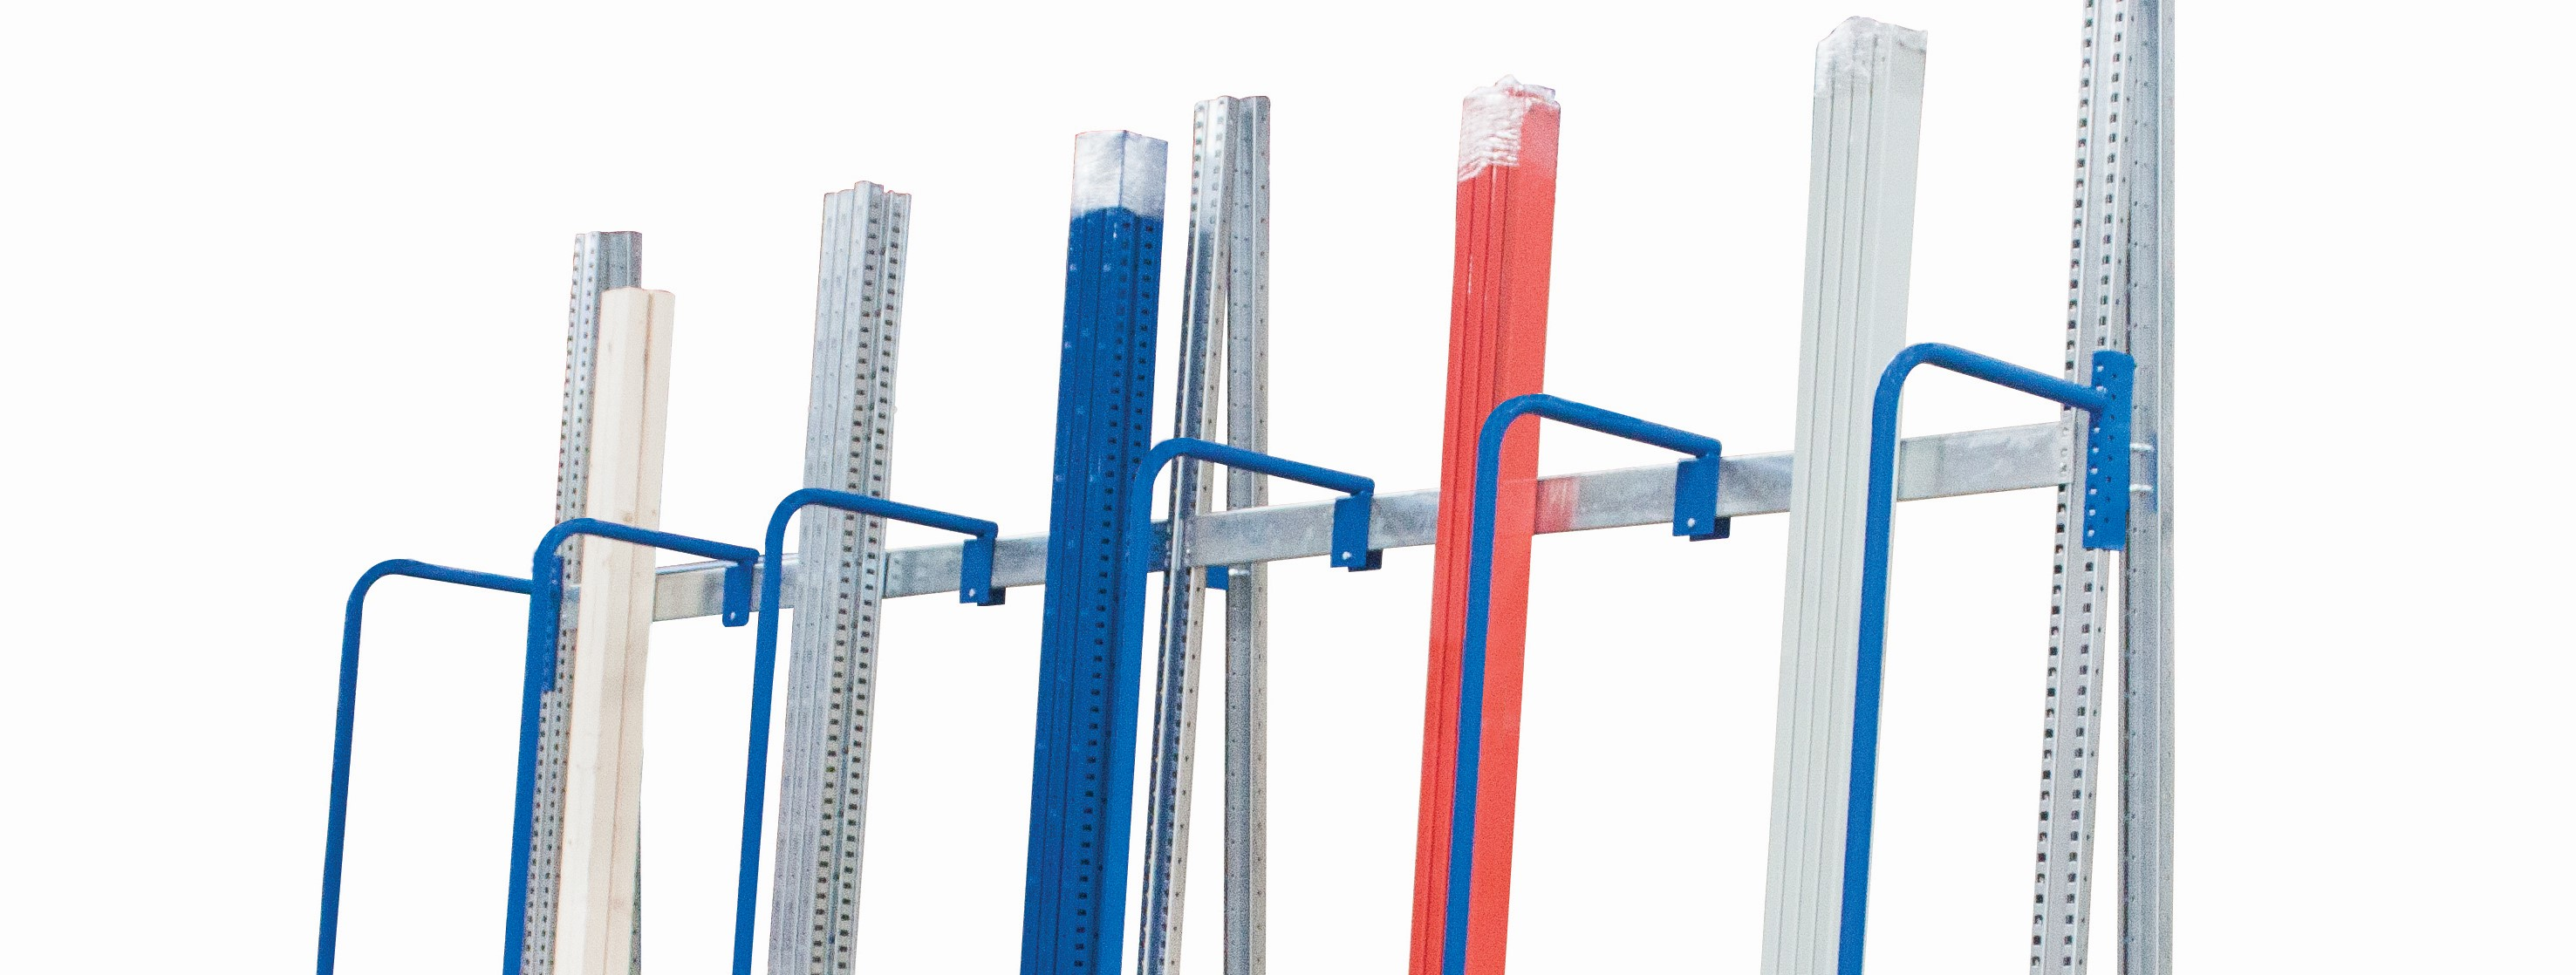 Anco Vertical Racking